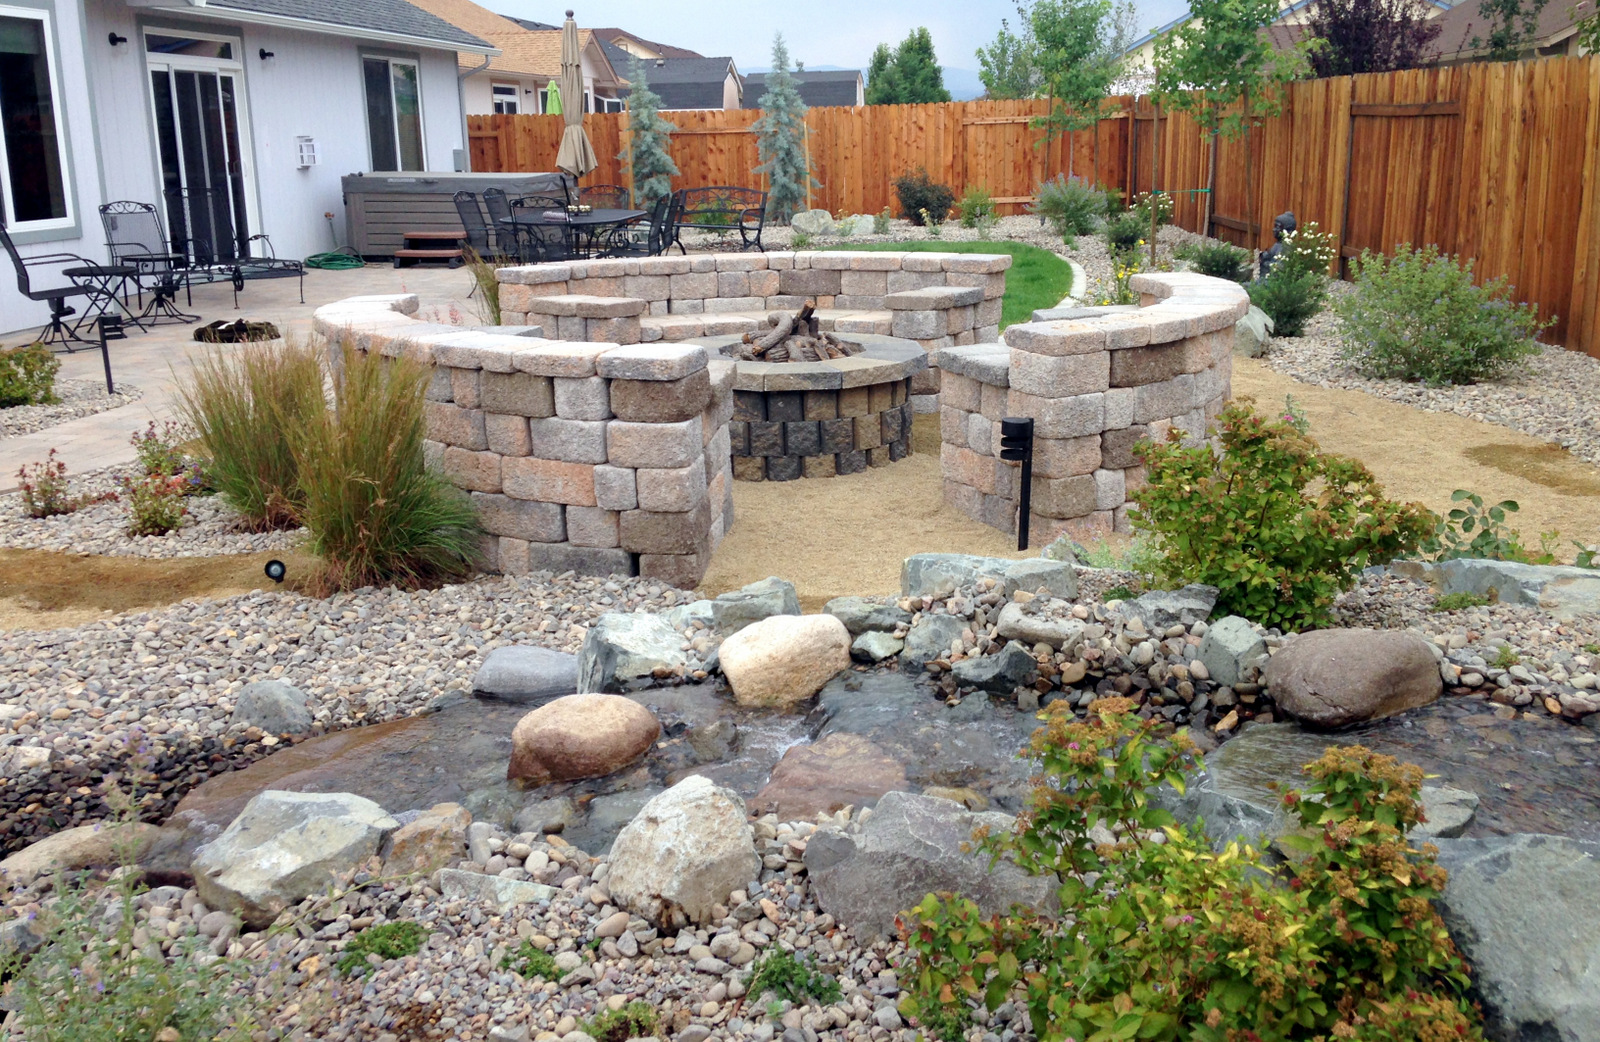 This yard is also a Certified Wildlife Habitat from the National Wildlife Federation.